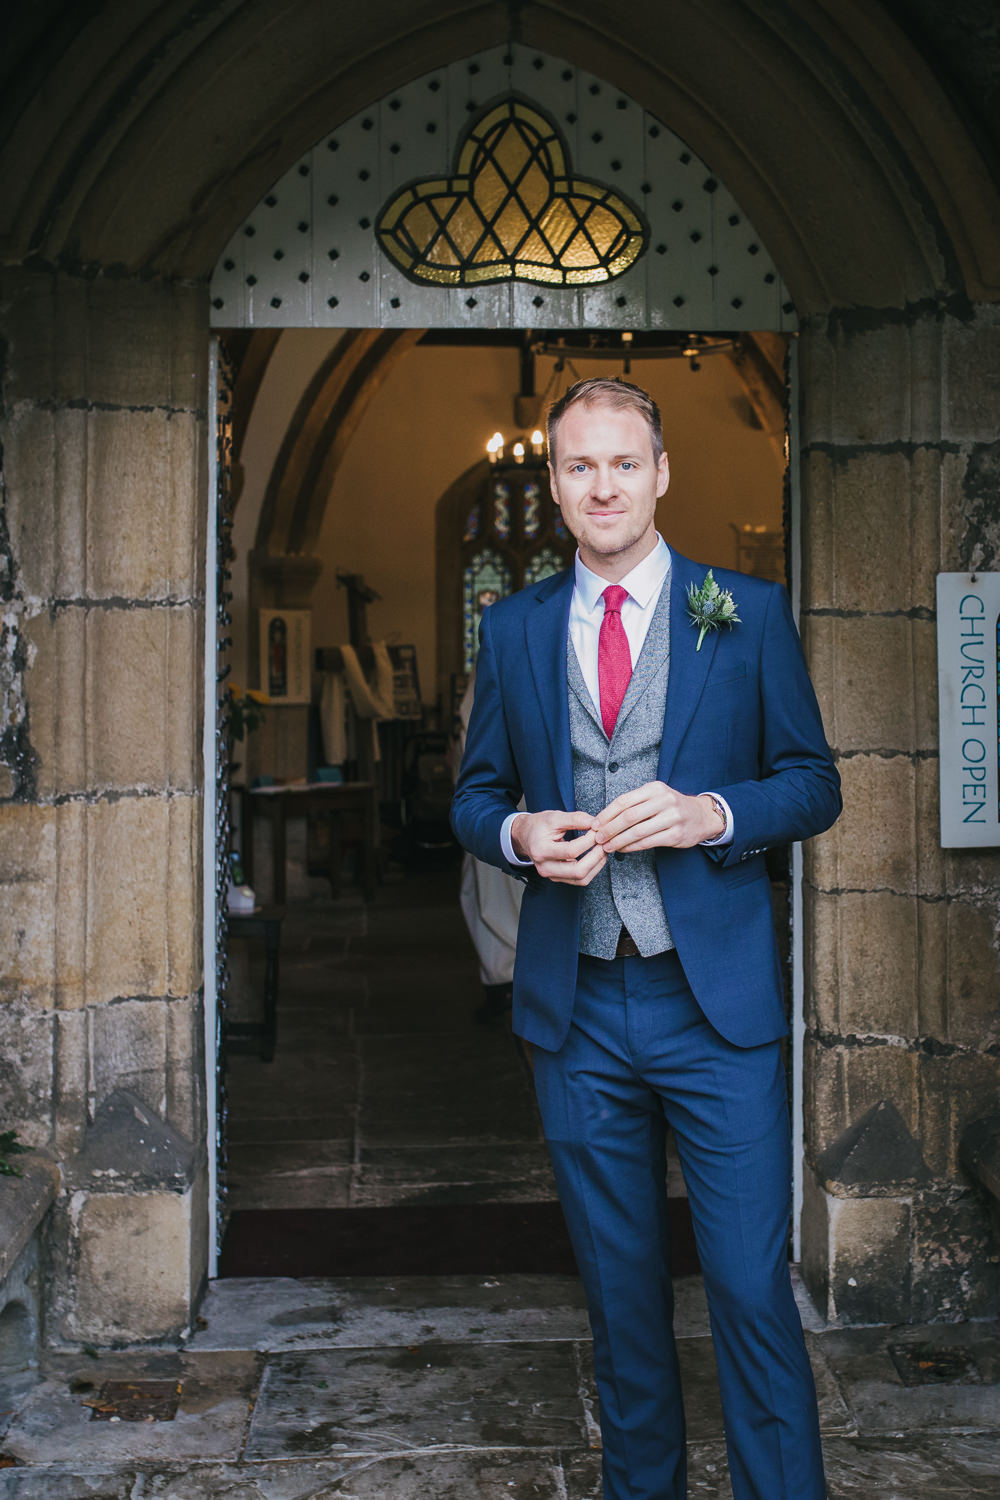 Groom Suit Blue Grey Waistcoat Red Tie Cosy Autumn Wedding Amy Jordison Photography